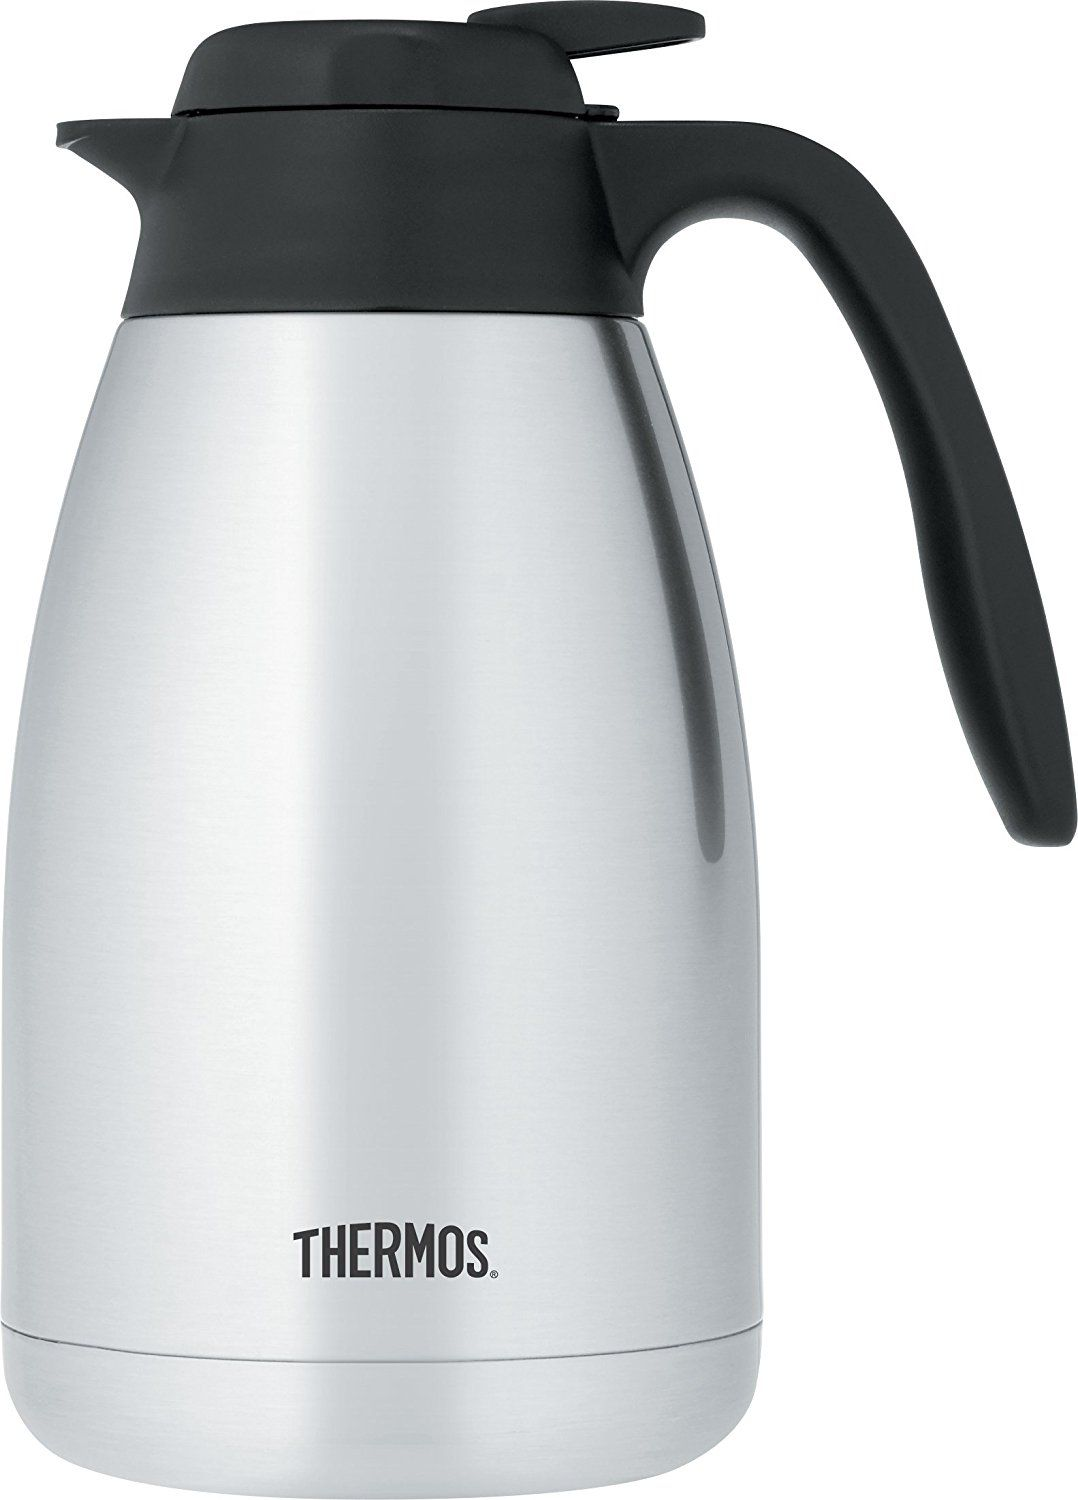 Nice Top 10 Thermal Carafes in 2017 Reviews Home & Kitchen